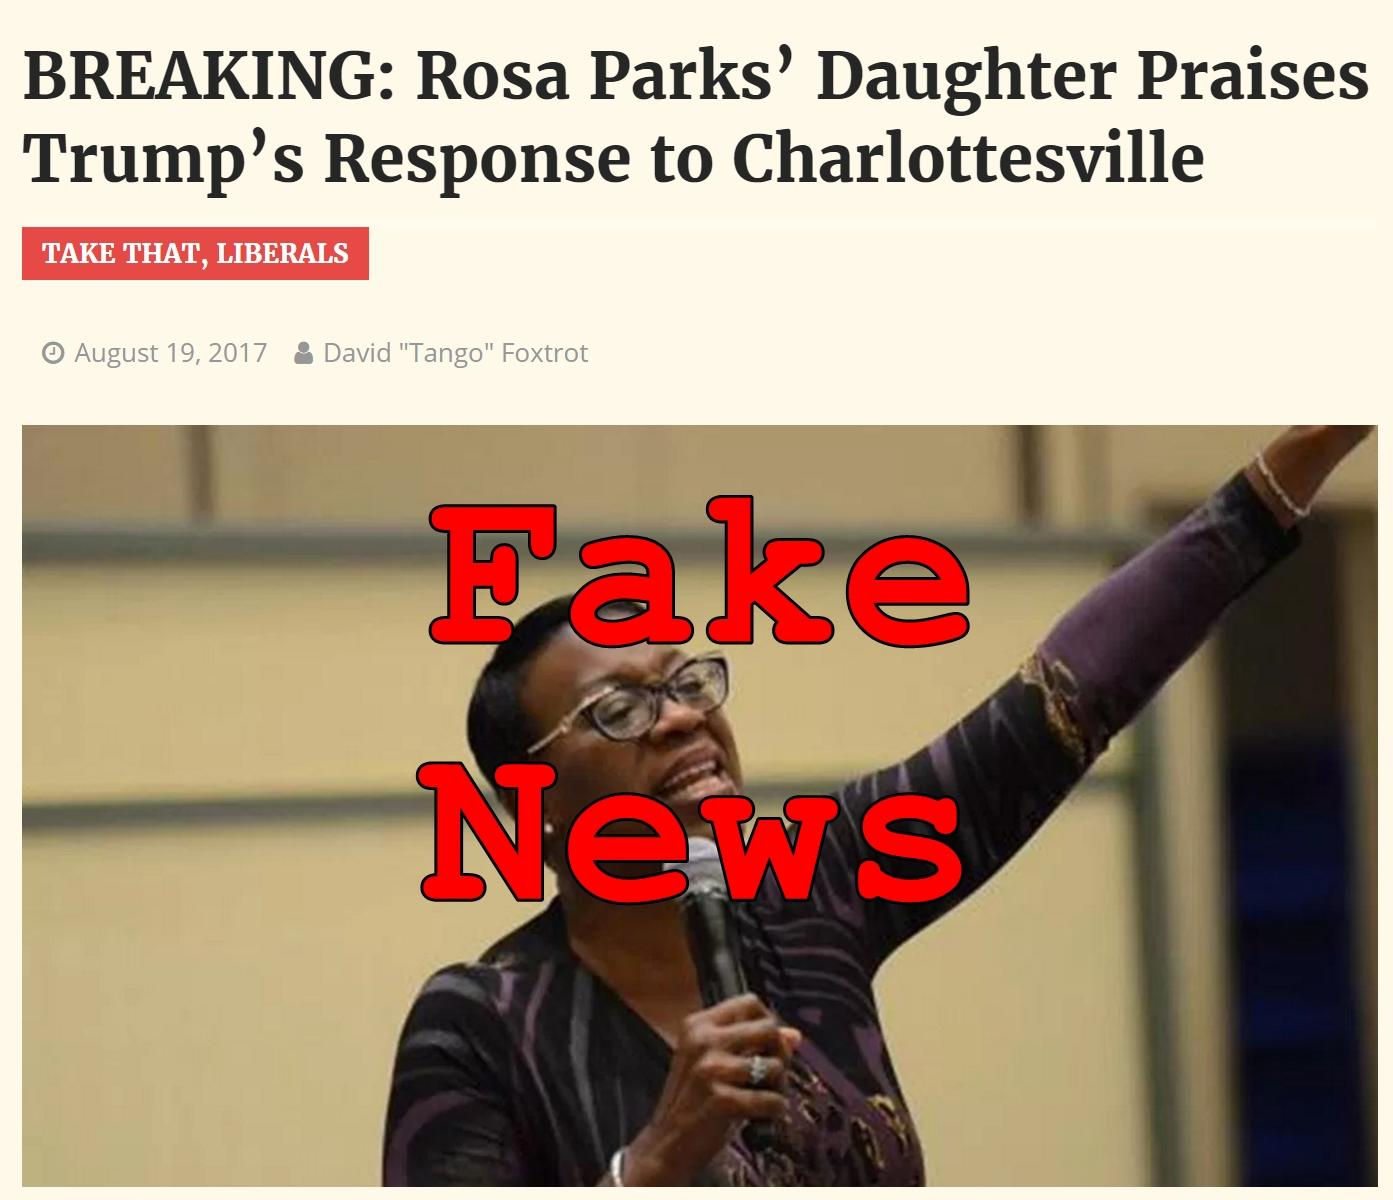 Fake News: Rosa Parks' Daughter DID Not Praise Trump's Response to Charlottesville